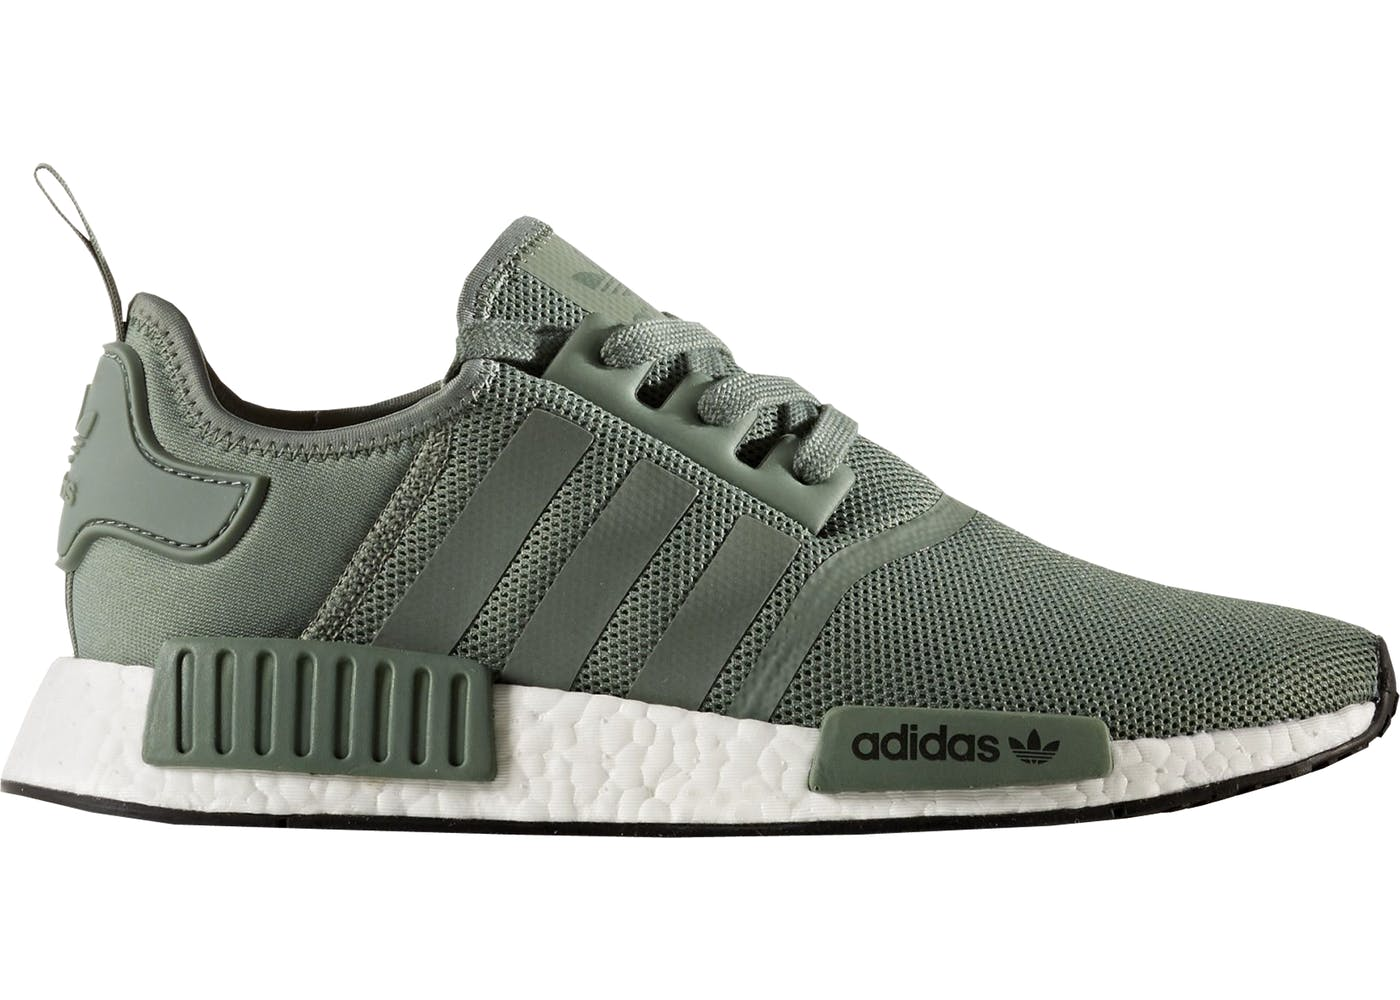 adidas nmd r1 trace green. Black Bedroom Furniture Sets. Home Design Ideas